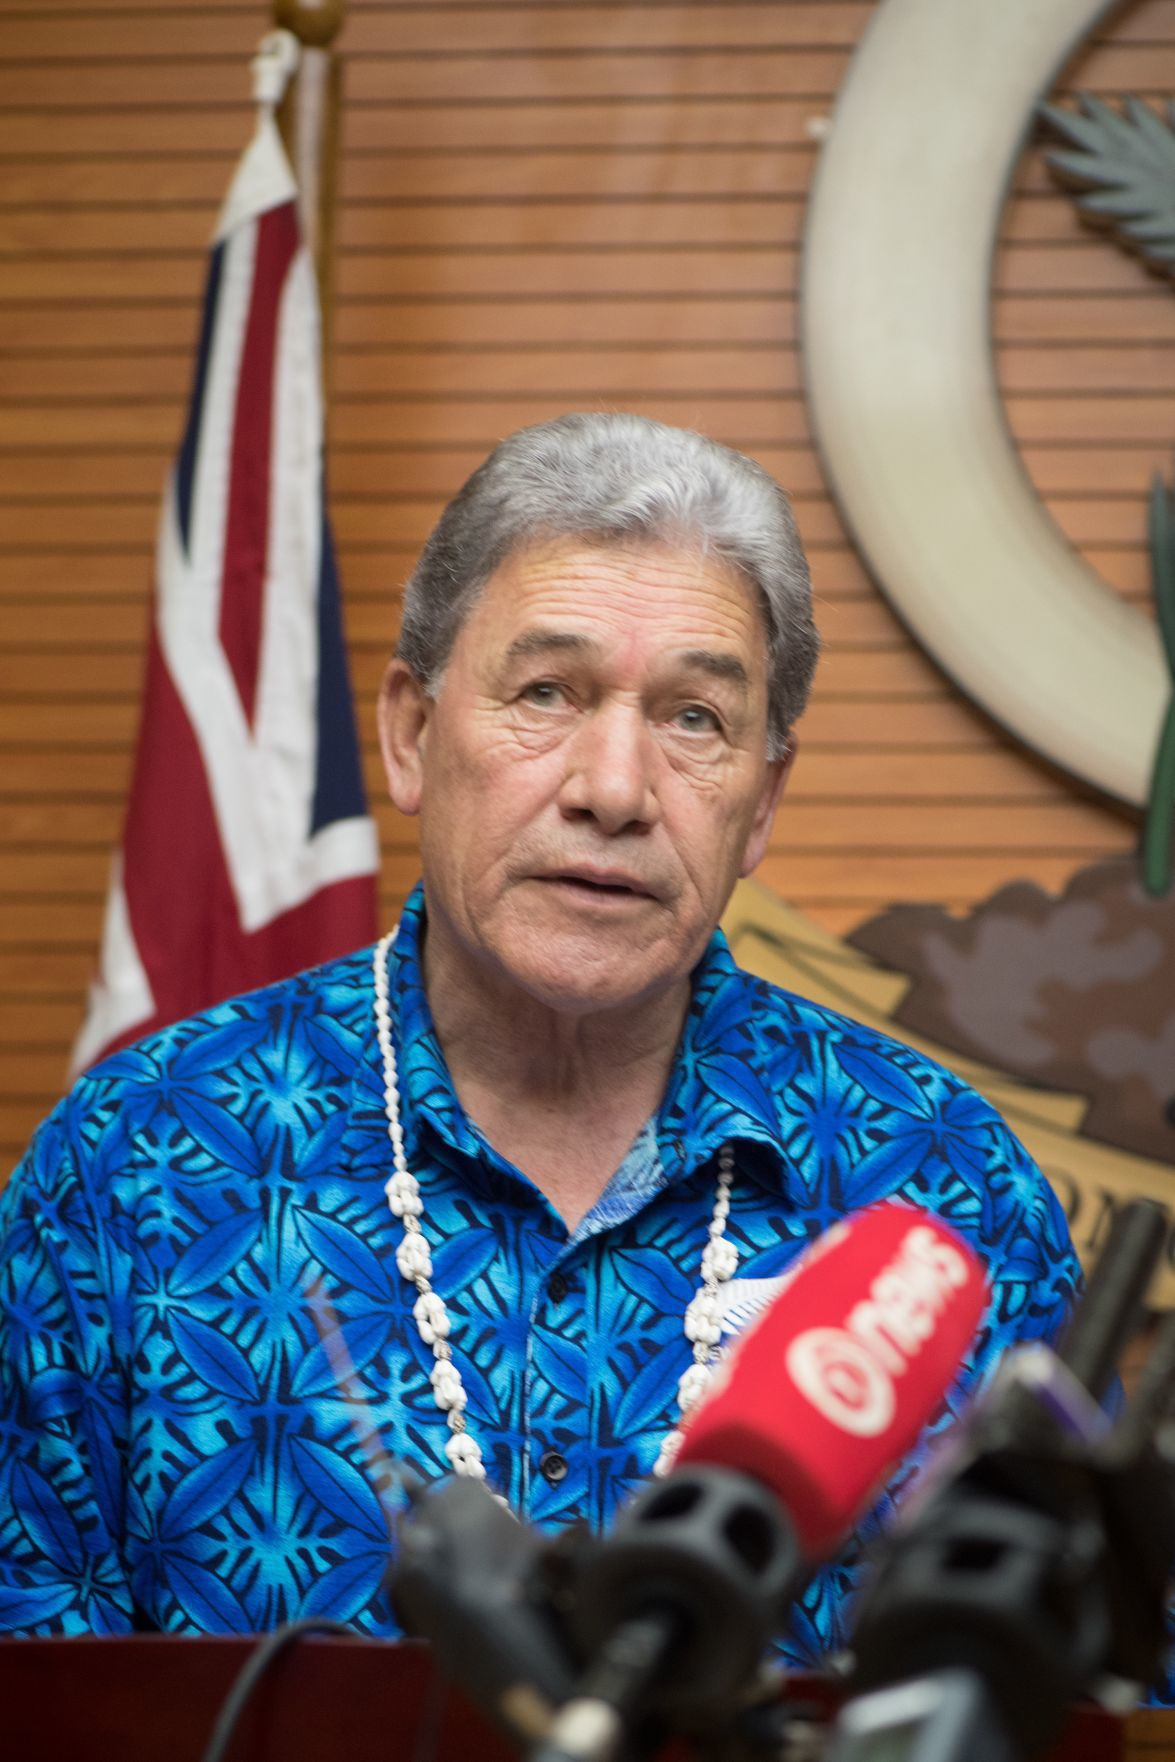 NZ Backs Action on Climate Change